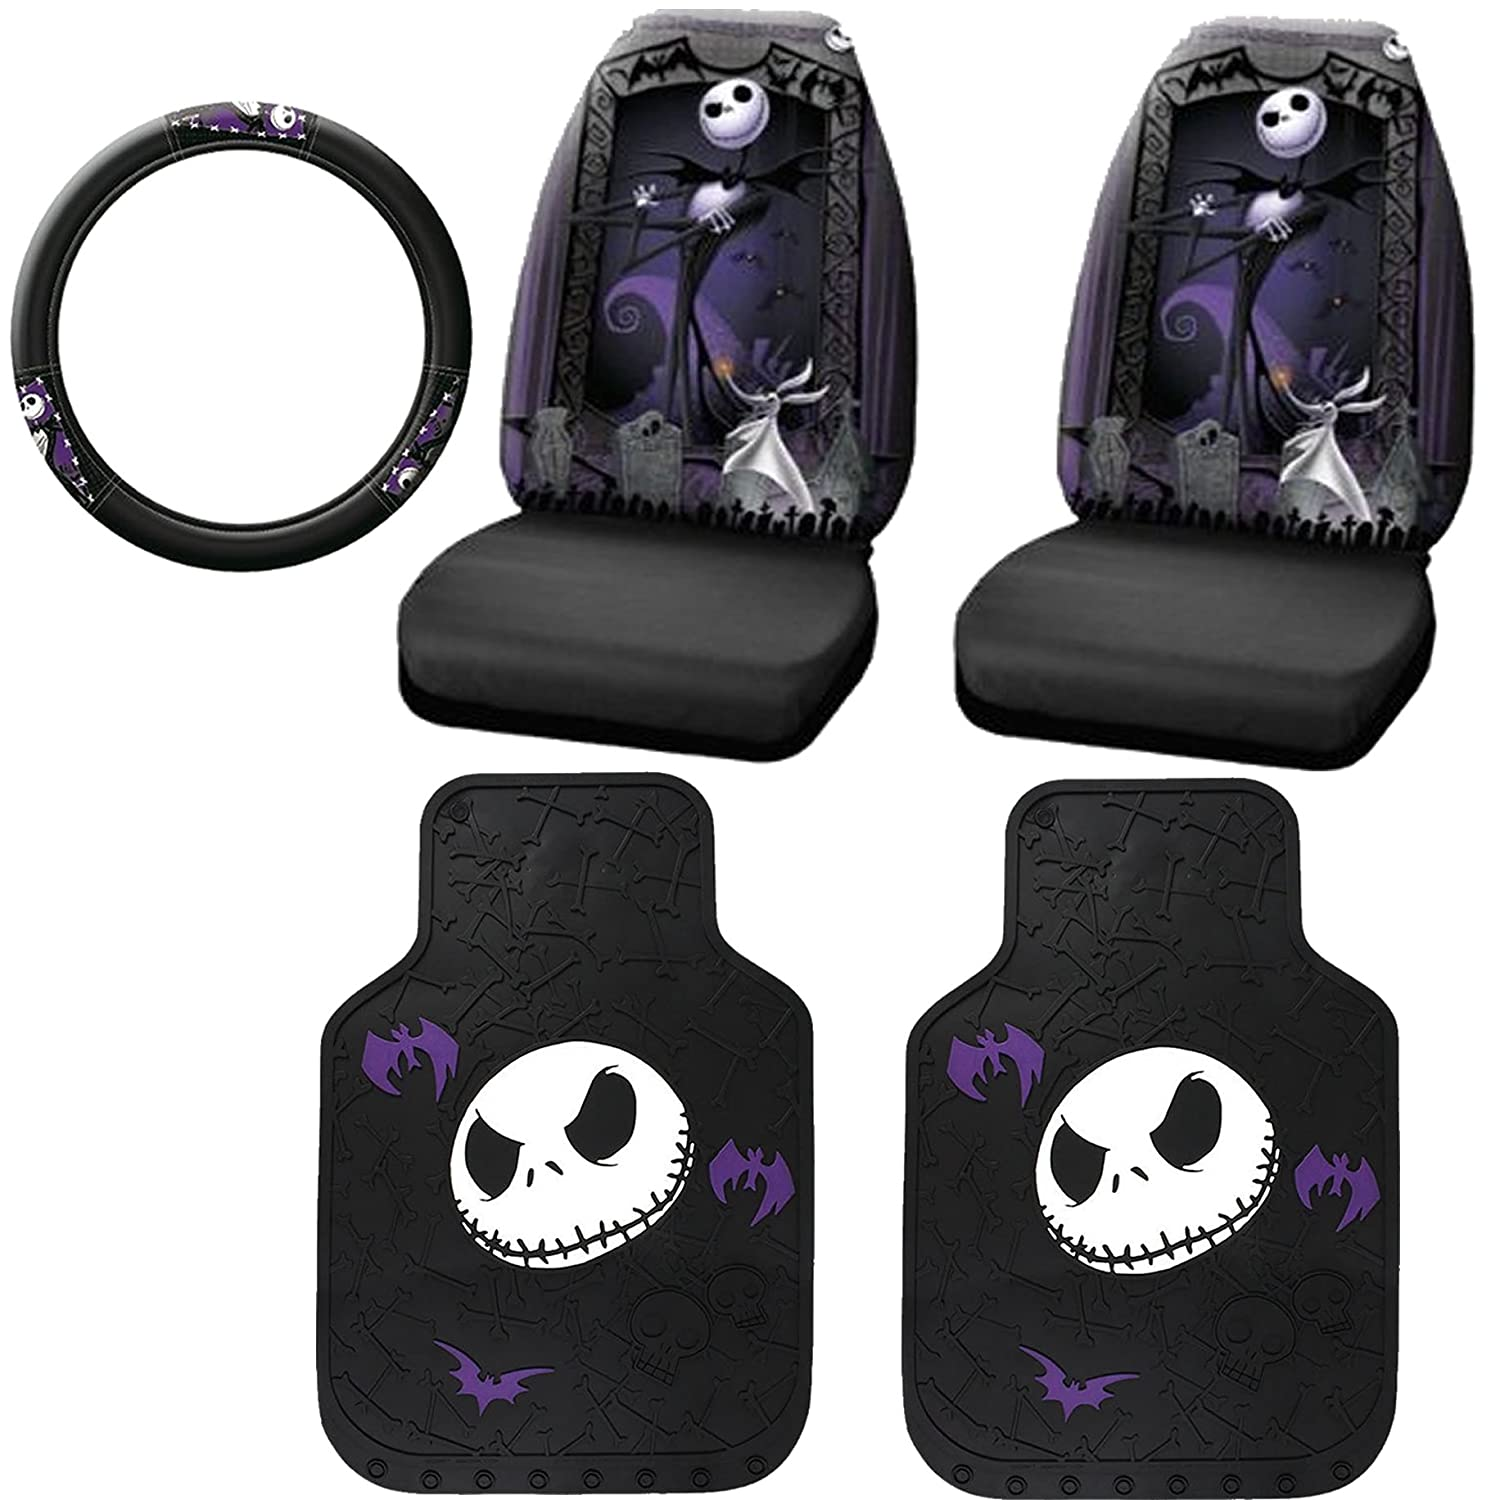 Jack skellington bathroom set - Amazon Com 5pc Nightmare Before Christmas Jack Skellington Graveyard Nbc Auto Accessories Interior Combo Kit Gift Set Front Floor Mats Seat Cover And